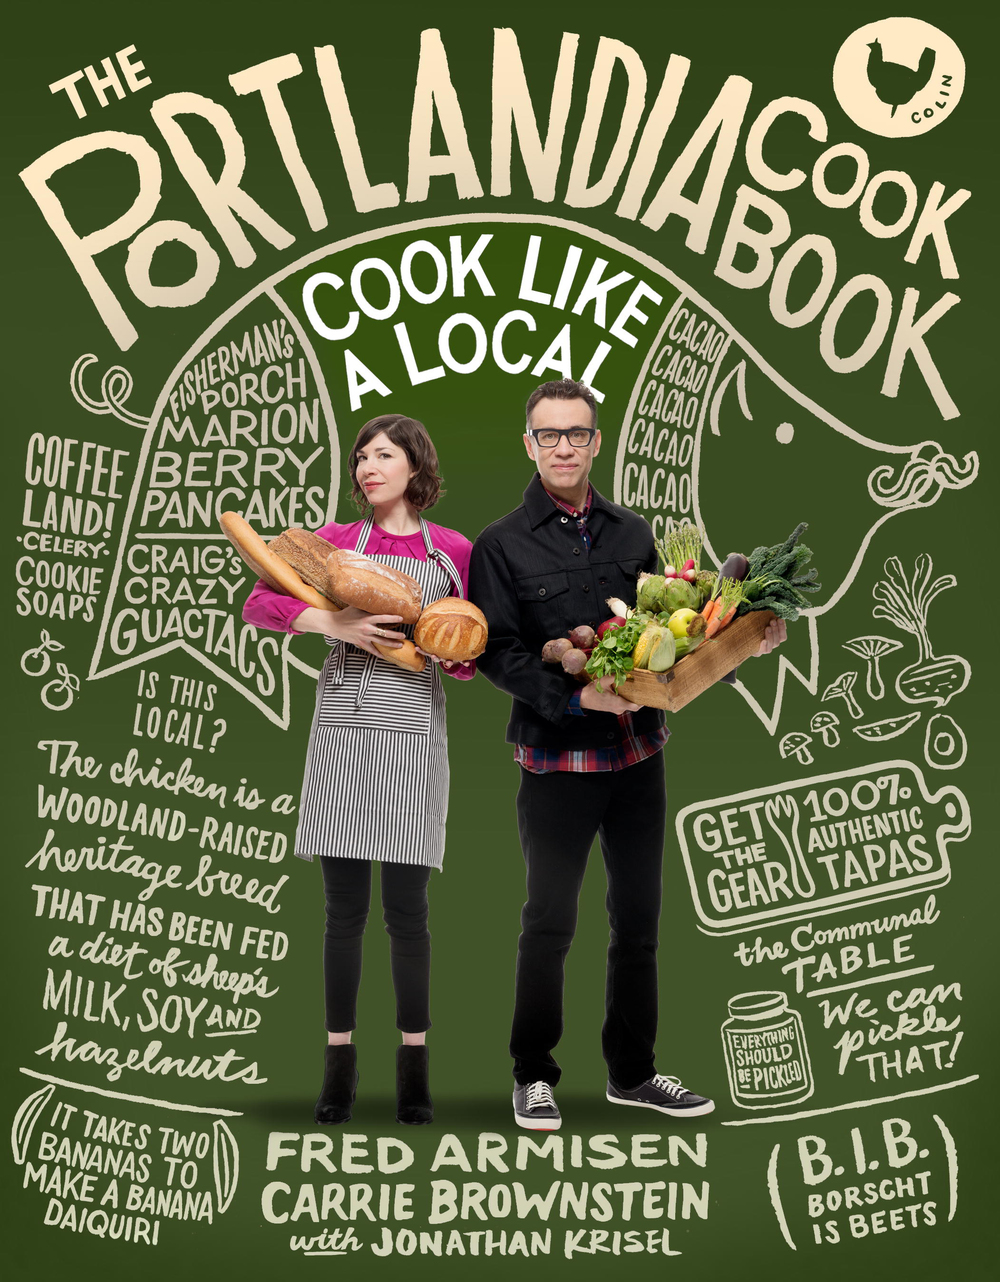 Portlandia-Cookbook-Cover.jpg